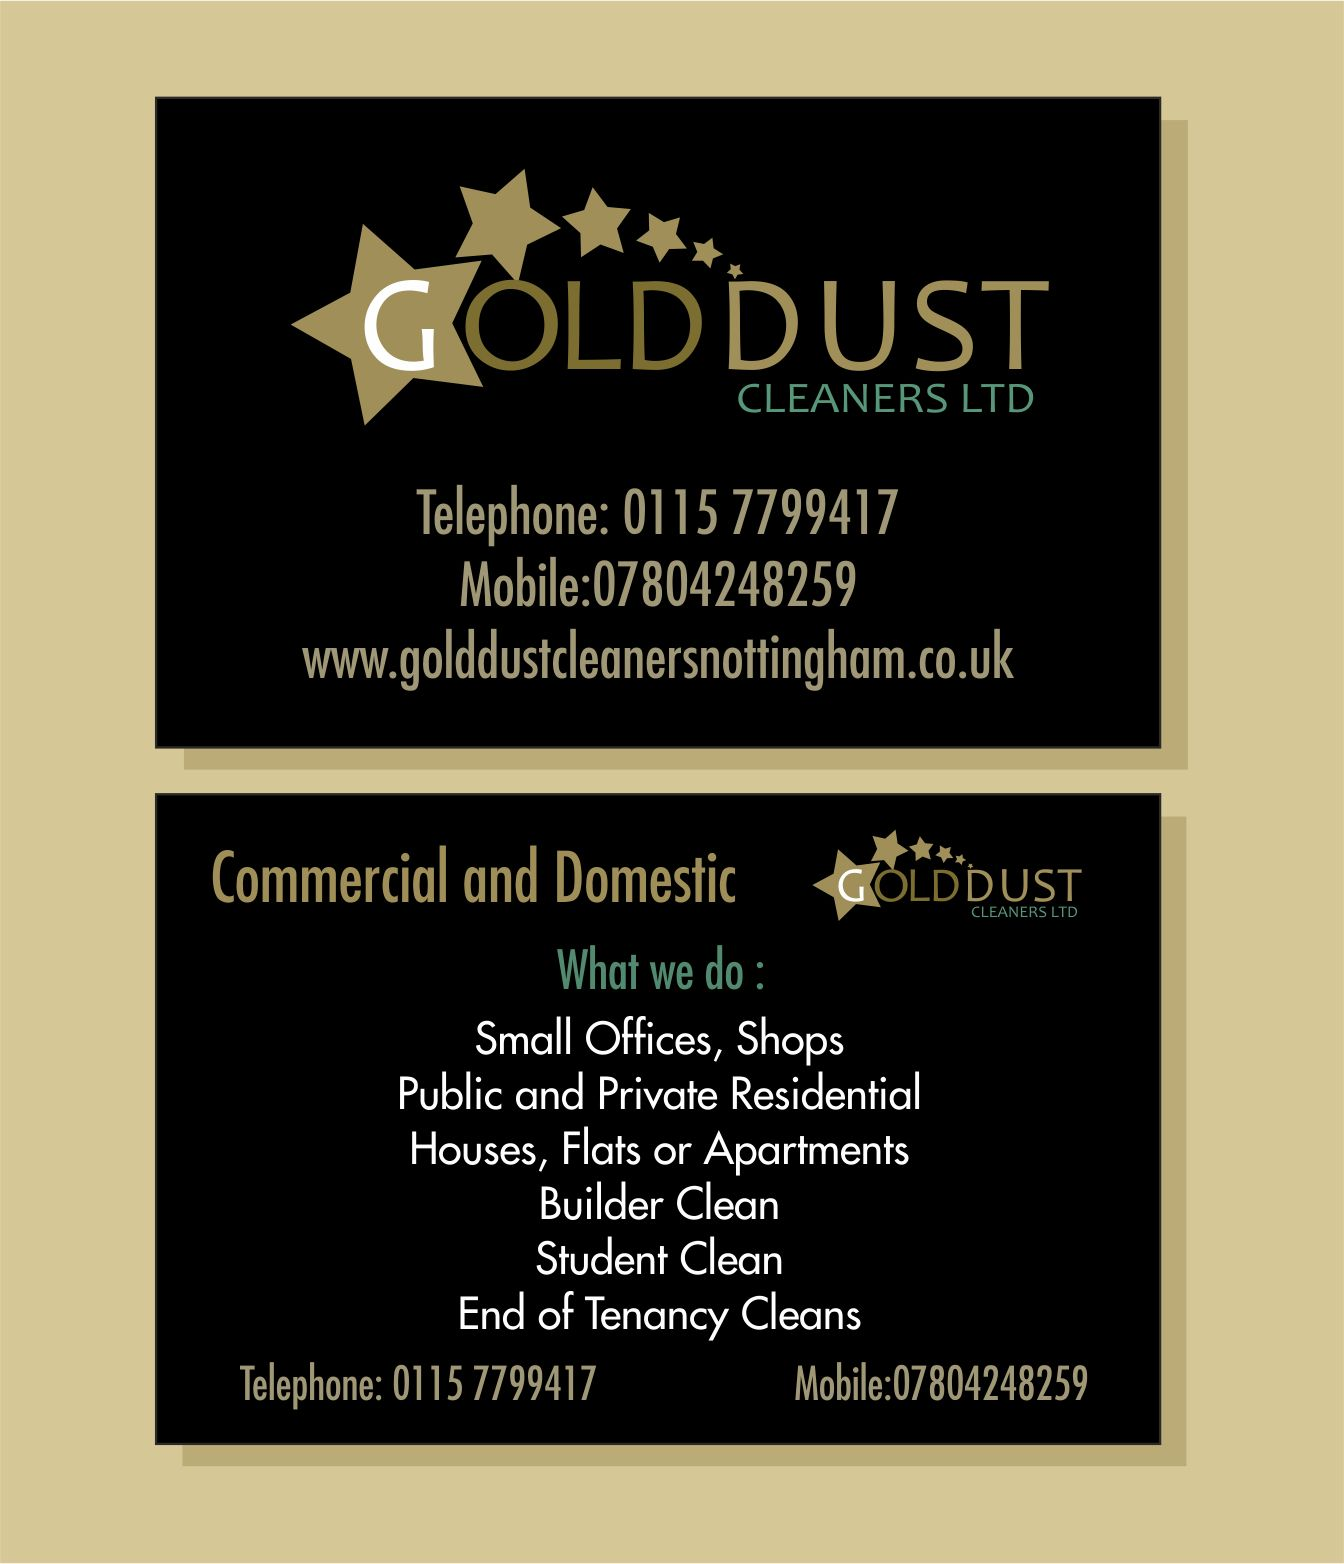 Business Cards for GoldDust Cleaners Desinged and printed by